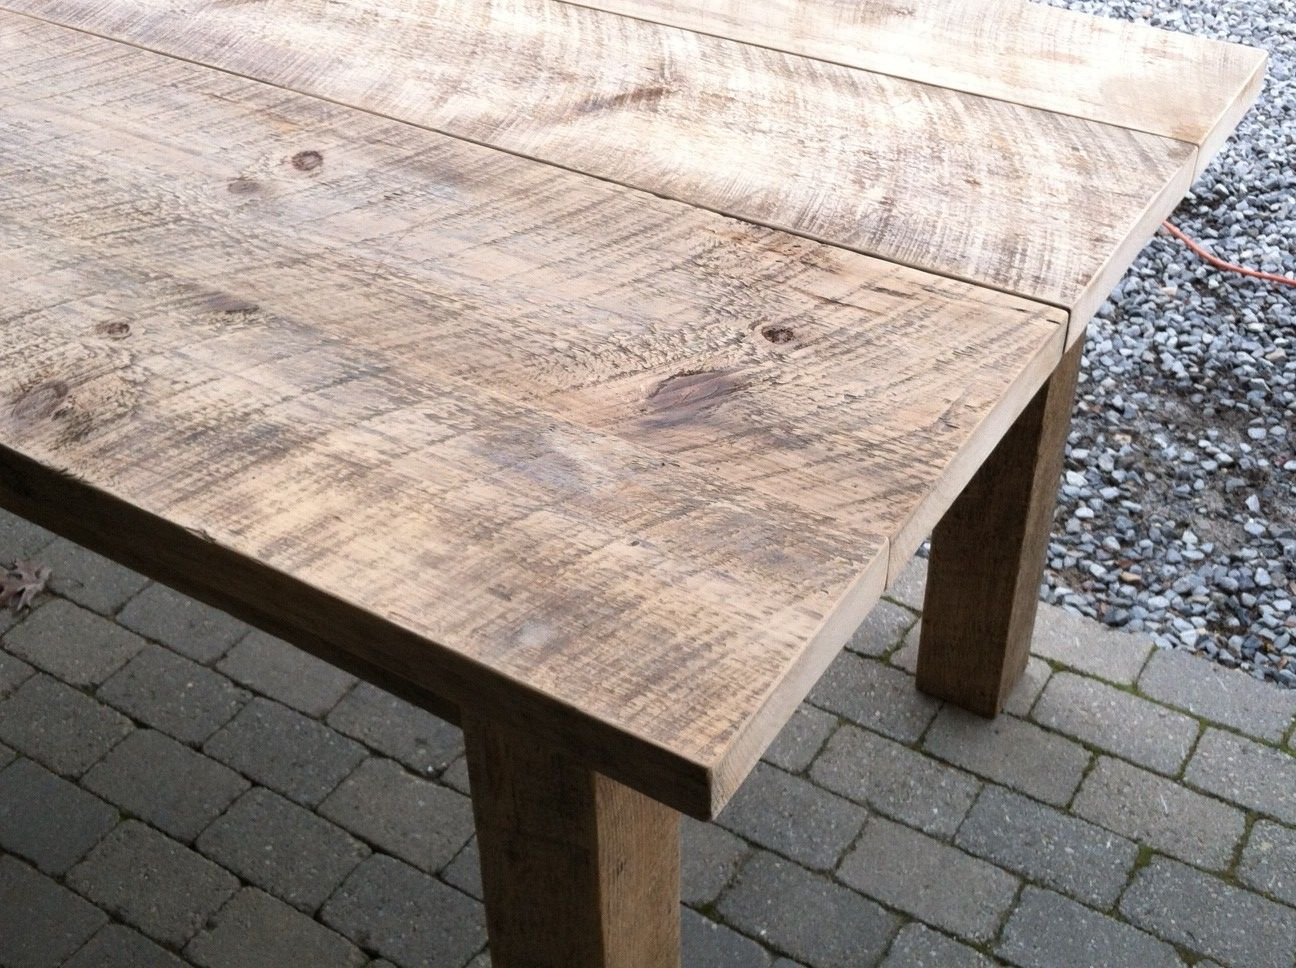 http://trophyw.blogspot.com/2012/05/how-to-weather-wood.html